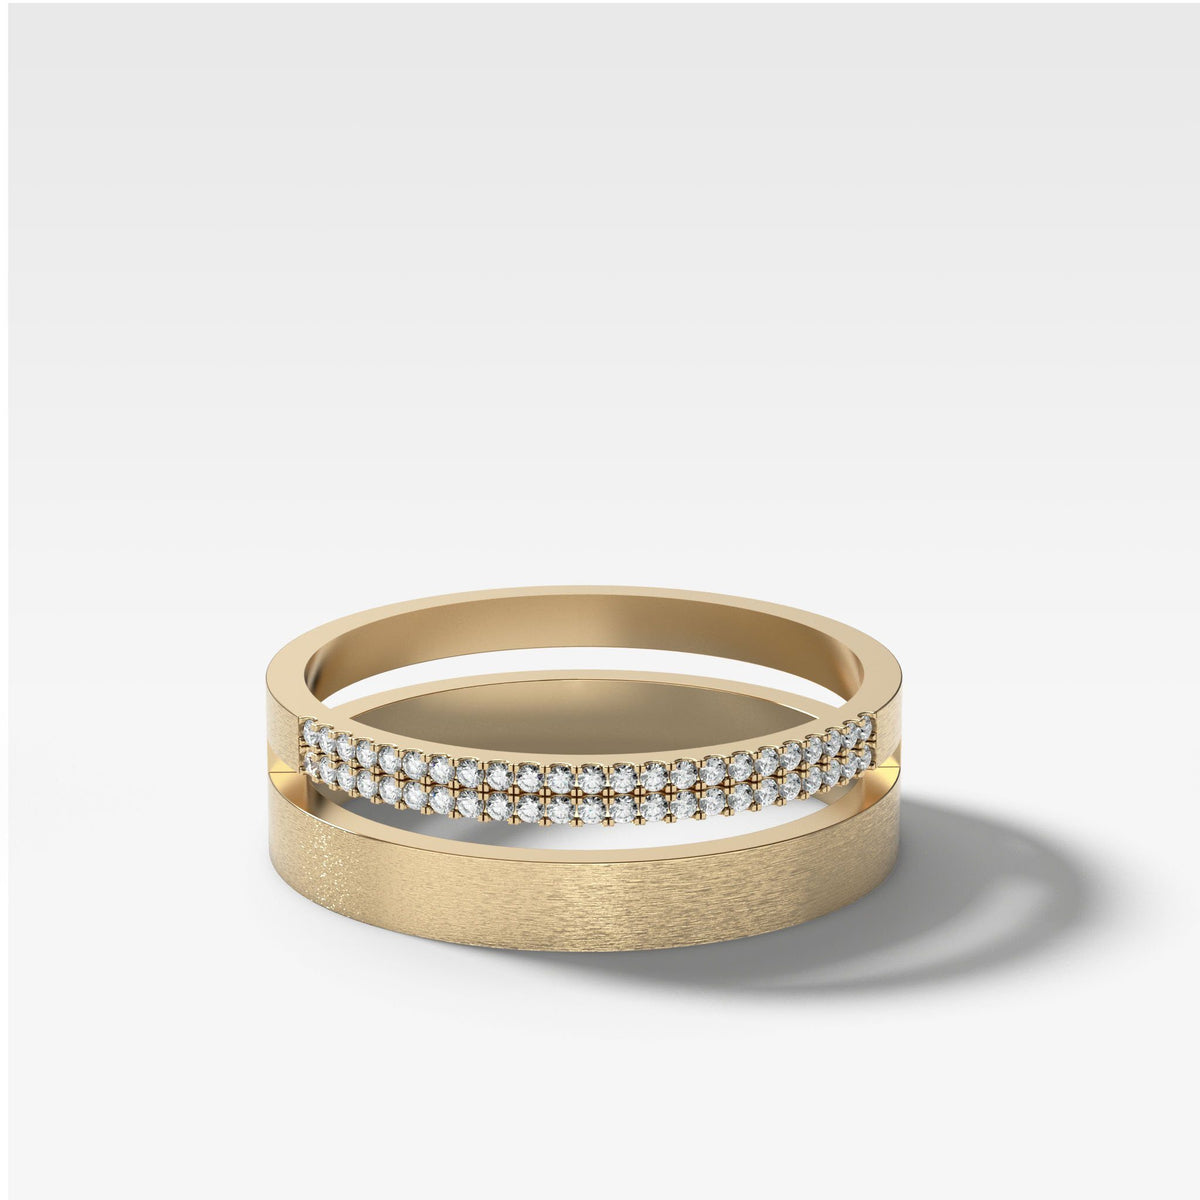 Orion Pavé Combo Stacker In Yellow Gold By Good Stone